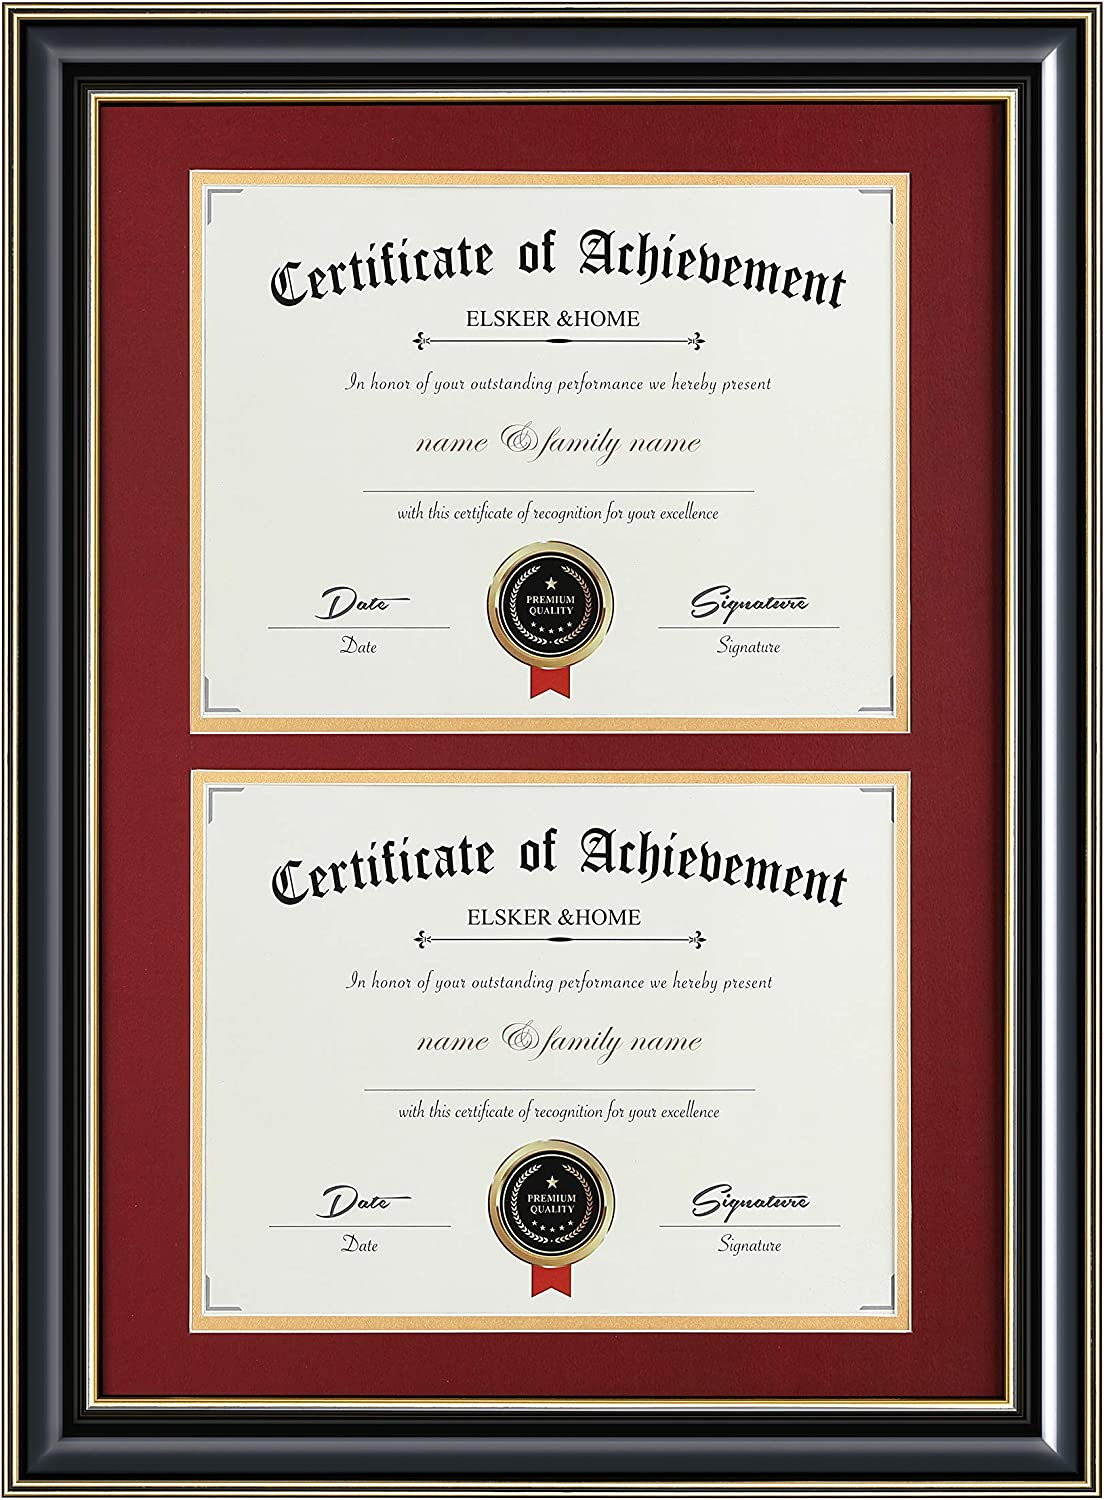 ELSKERHOME Double Document Photo Dedication Frame-Made 5% OFF for Certificat Wood